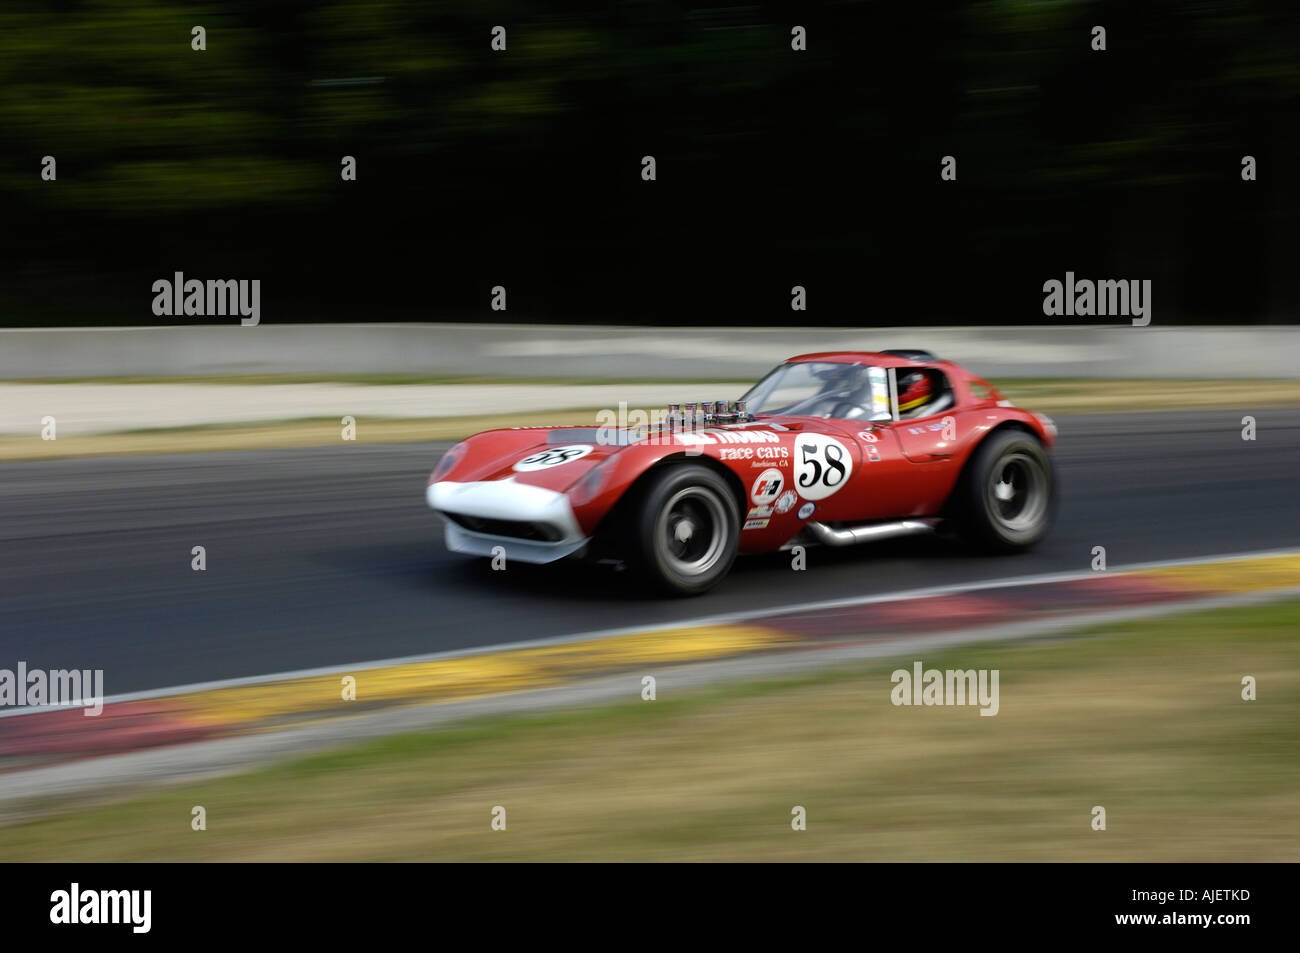 Burt Levy races his 1964 Cheetah at the 2006 Kohler International Challenge with Brian Redman at Road America - Stock Image